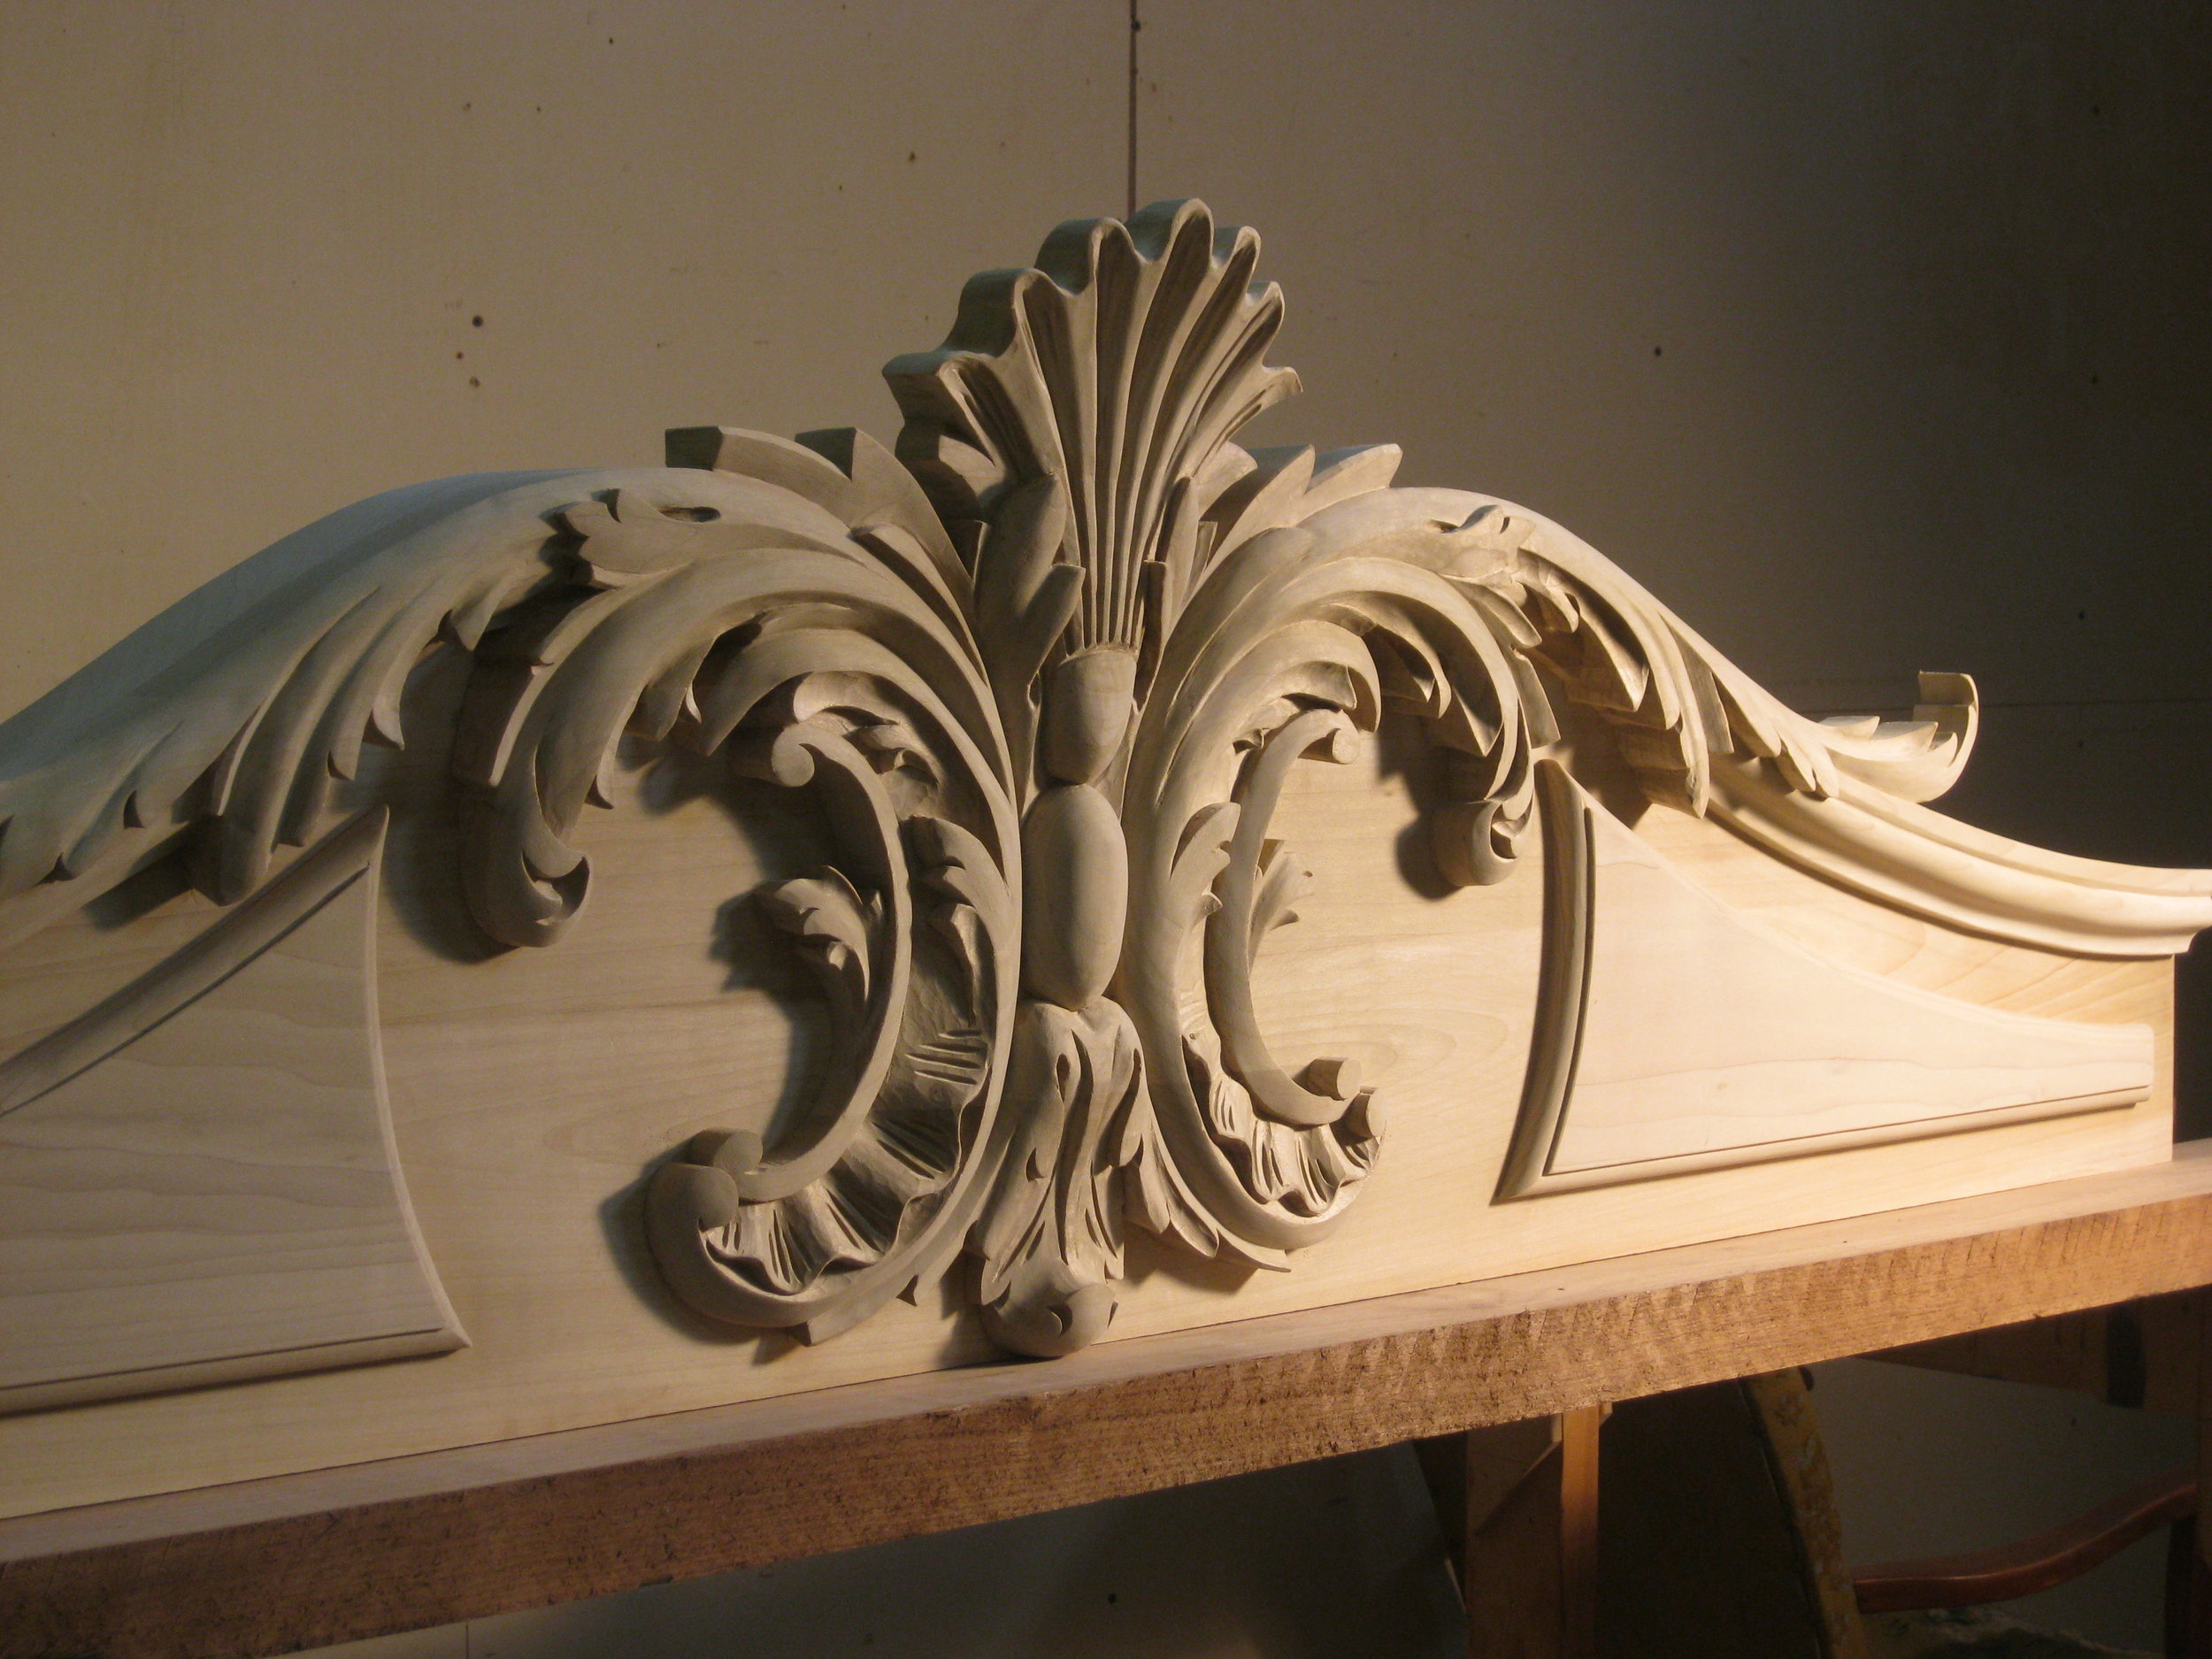 Carving-13-detail.jpg